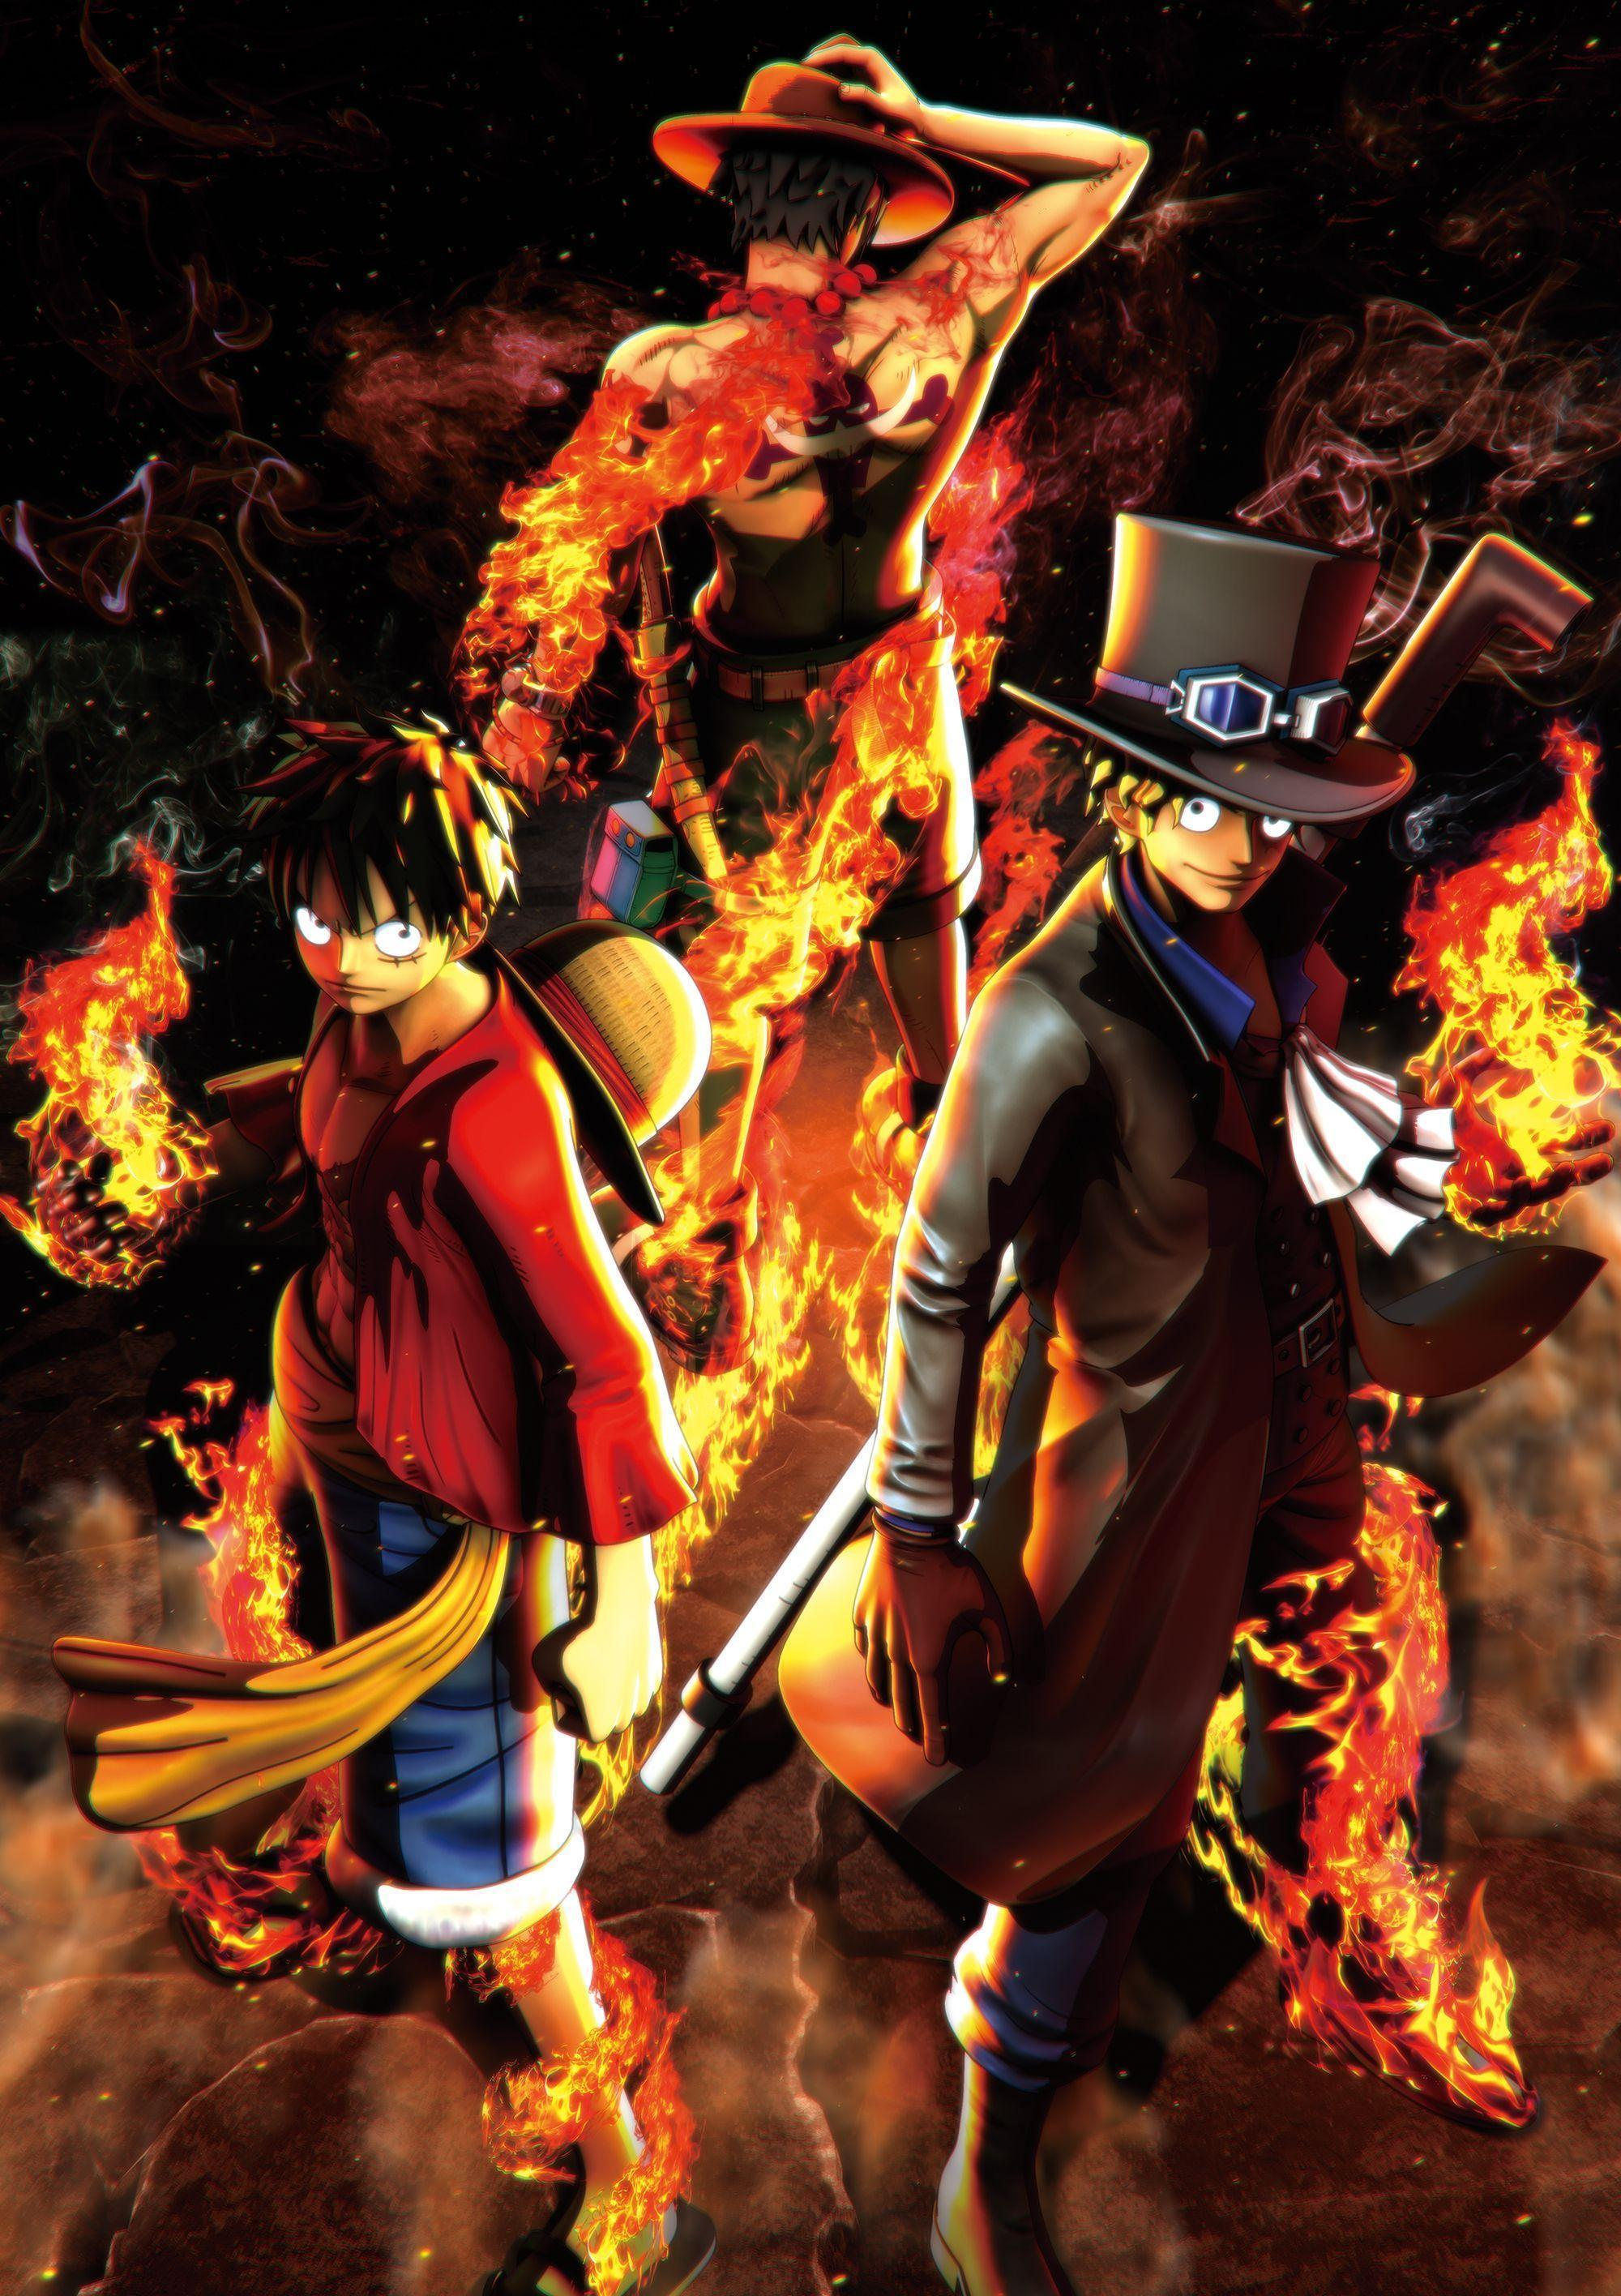 Latest post is sabo one piece jump force 4k wallpaper. One Piece Sabo Wallpapers - Wallpaper Cave